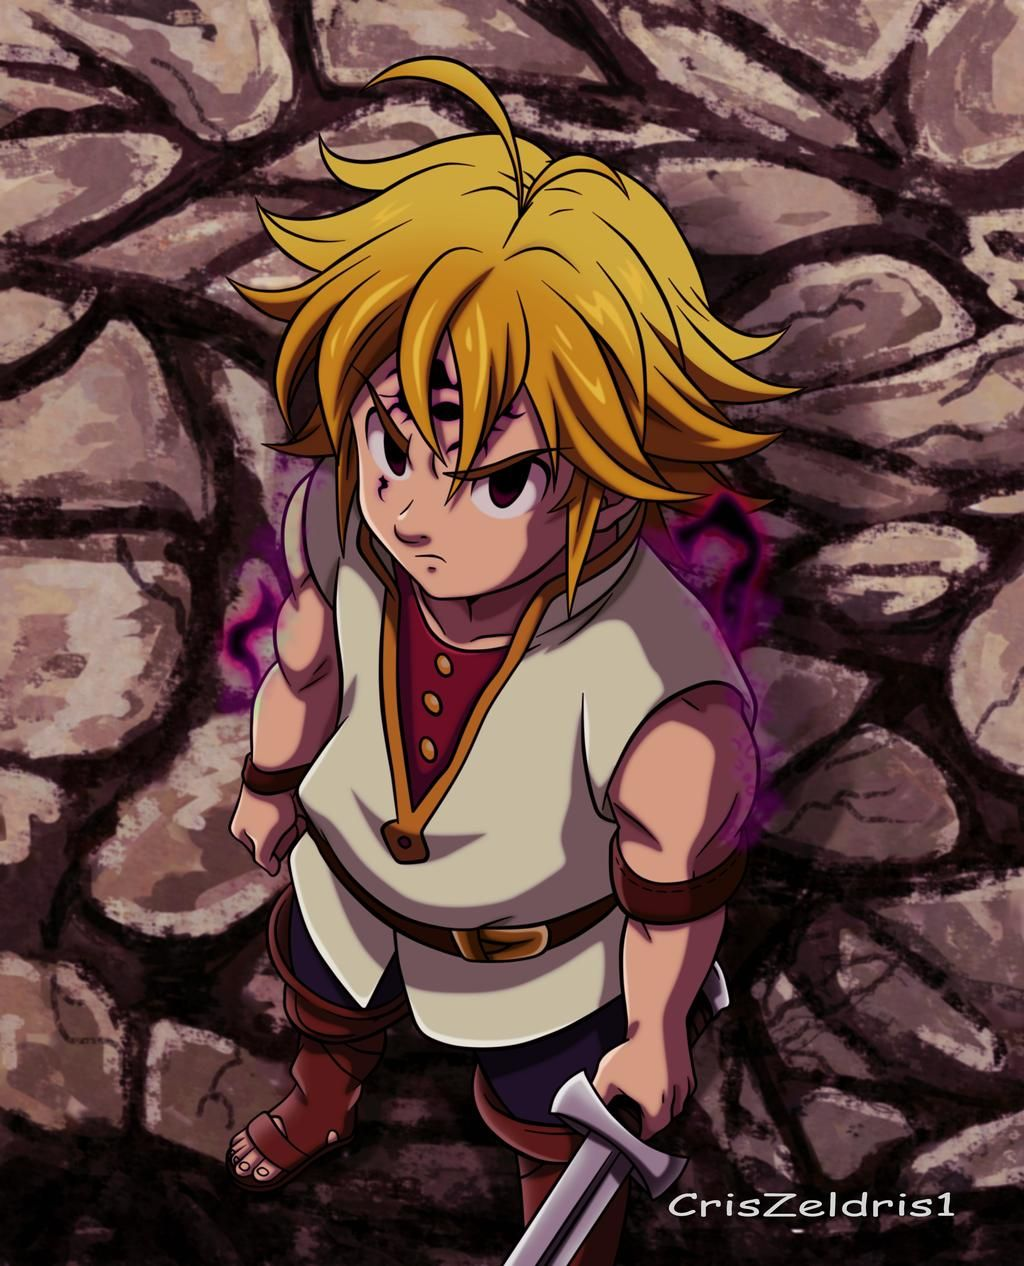 MeliodasNanatsu no Taizai Movie by CrisZeldris1 on